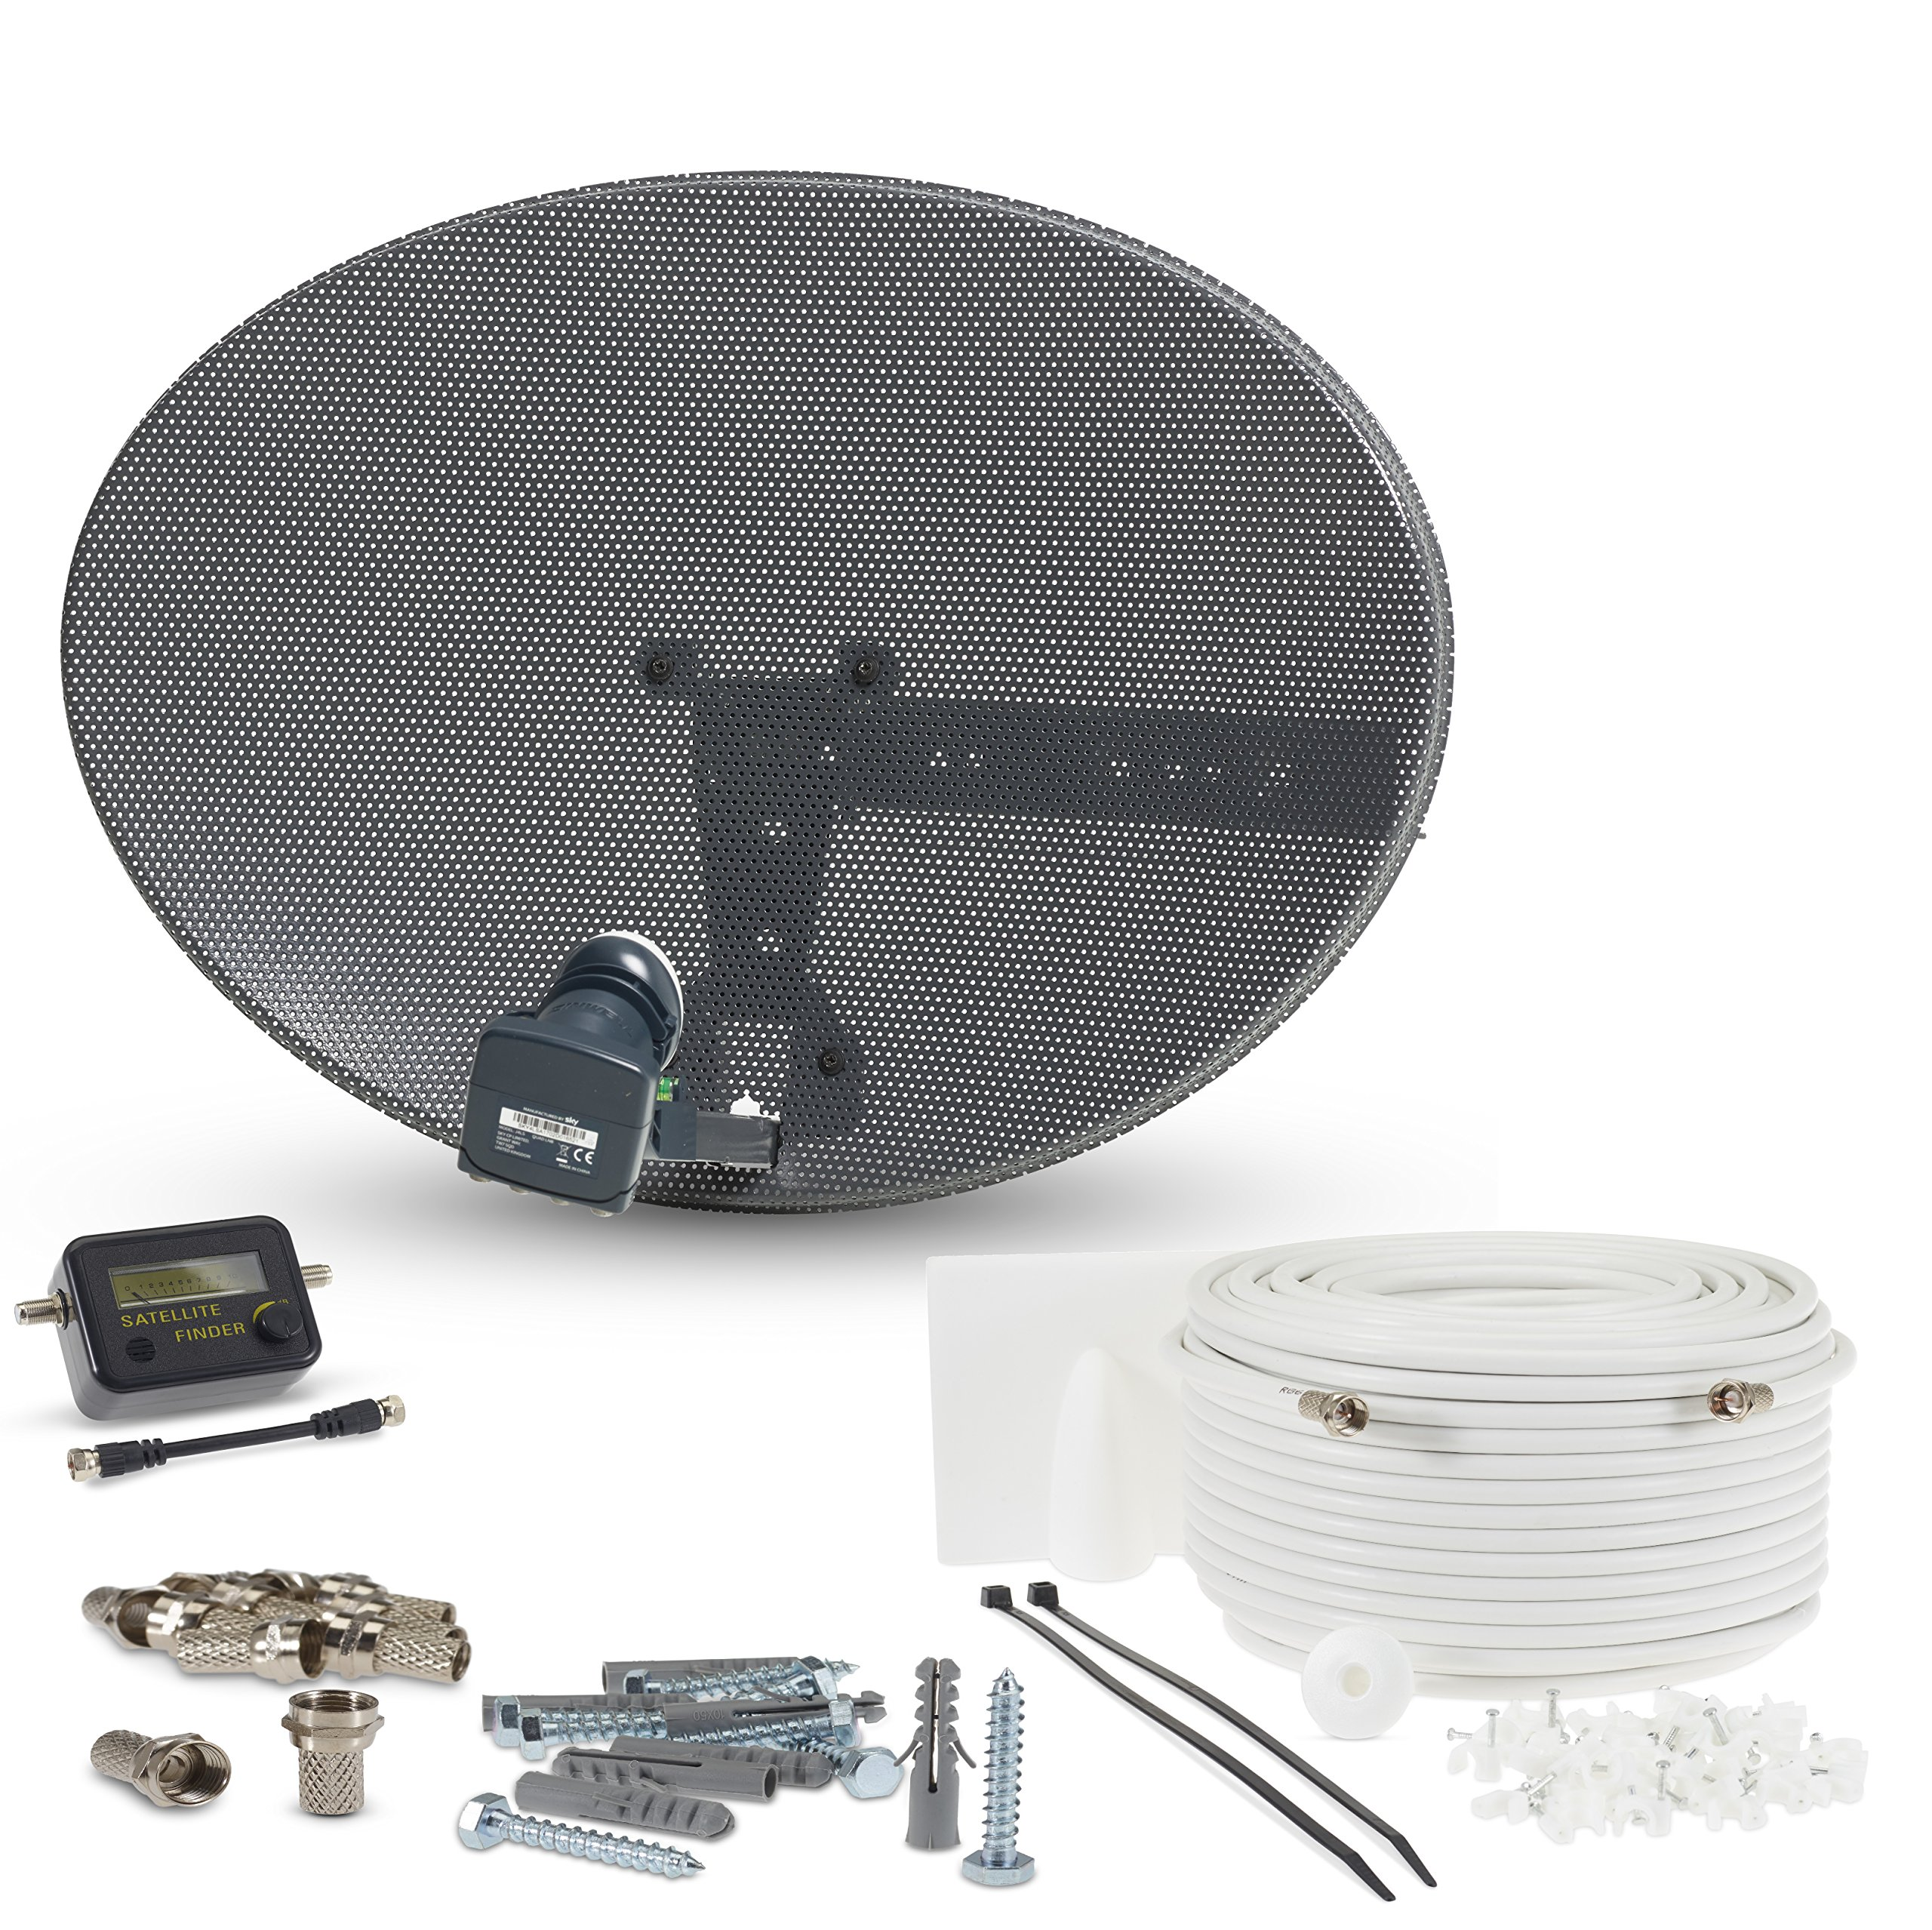 SSL Satellite Dish Kit for SKY/Freesat/Astra/Polsat/Hotbird/Full HD,Latest MK4 dish with Quad LNB,5m RG6 White Cable,Signal finder,Brackets,Bolts, F Connectors & instructions